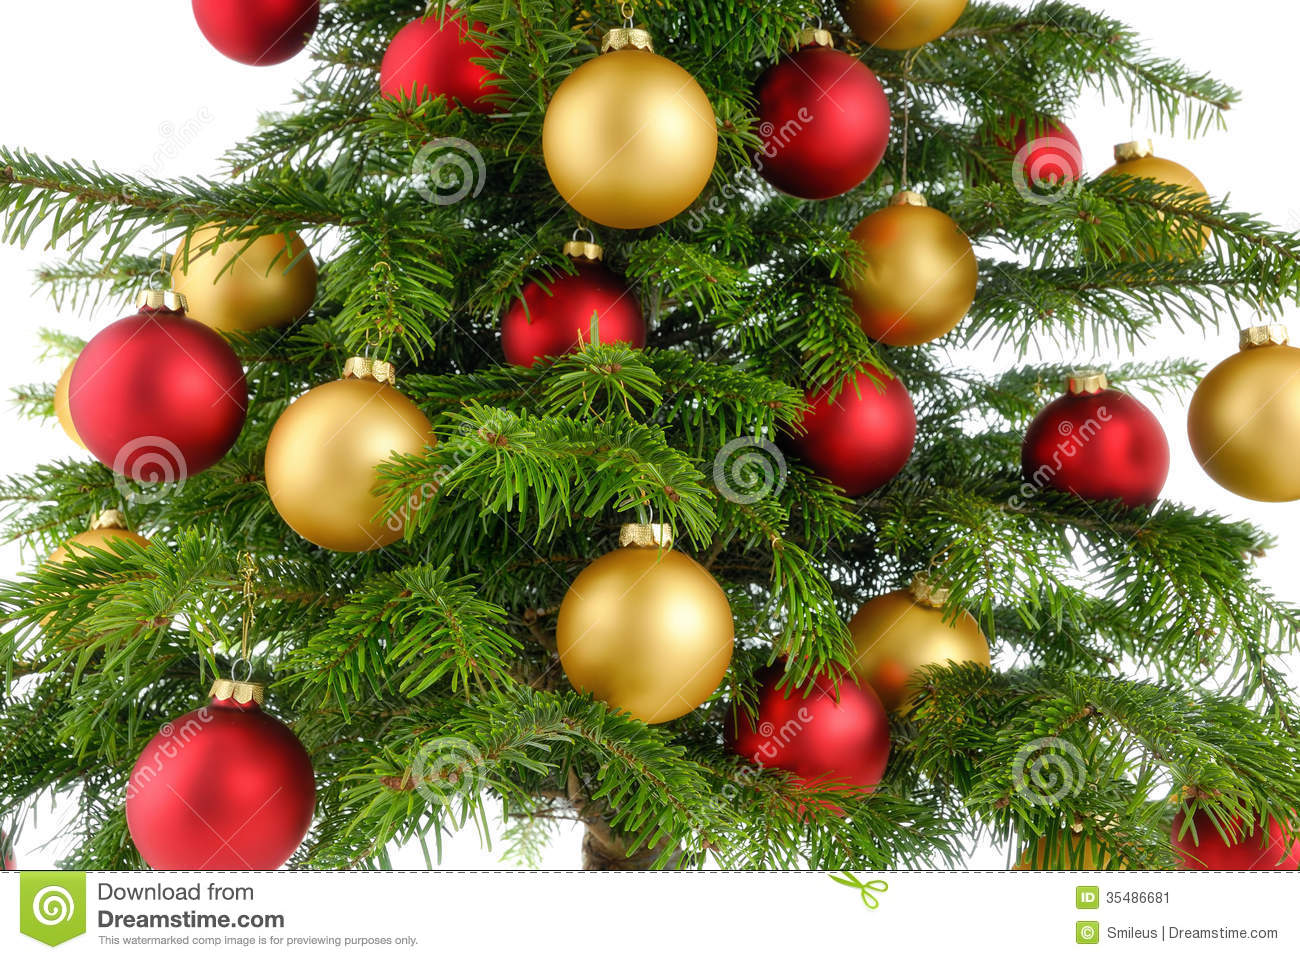 Red and gold christmas tree decorations - Christmas Gold Red Studio Tree